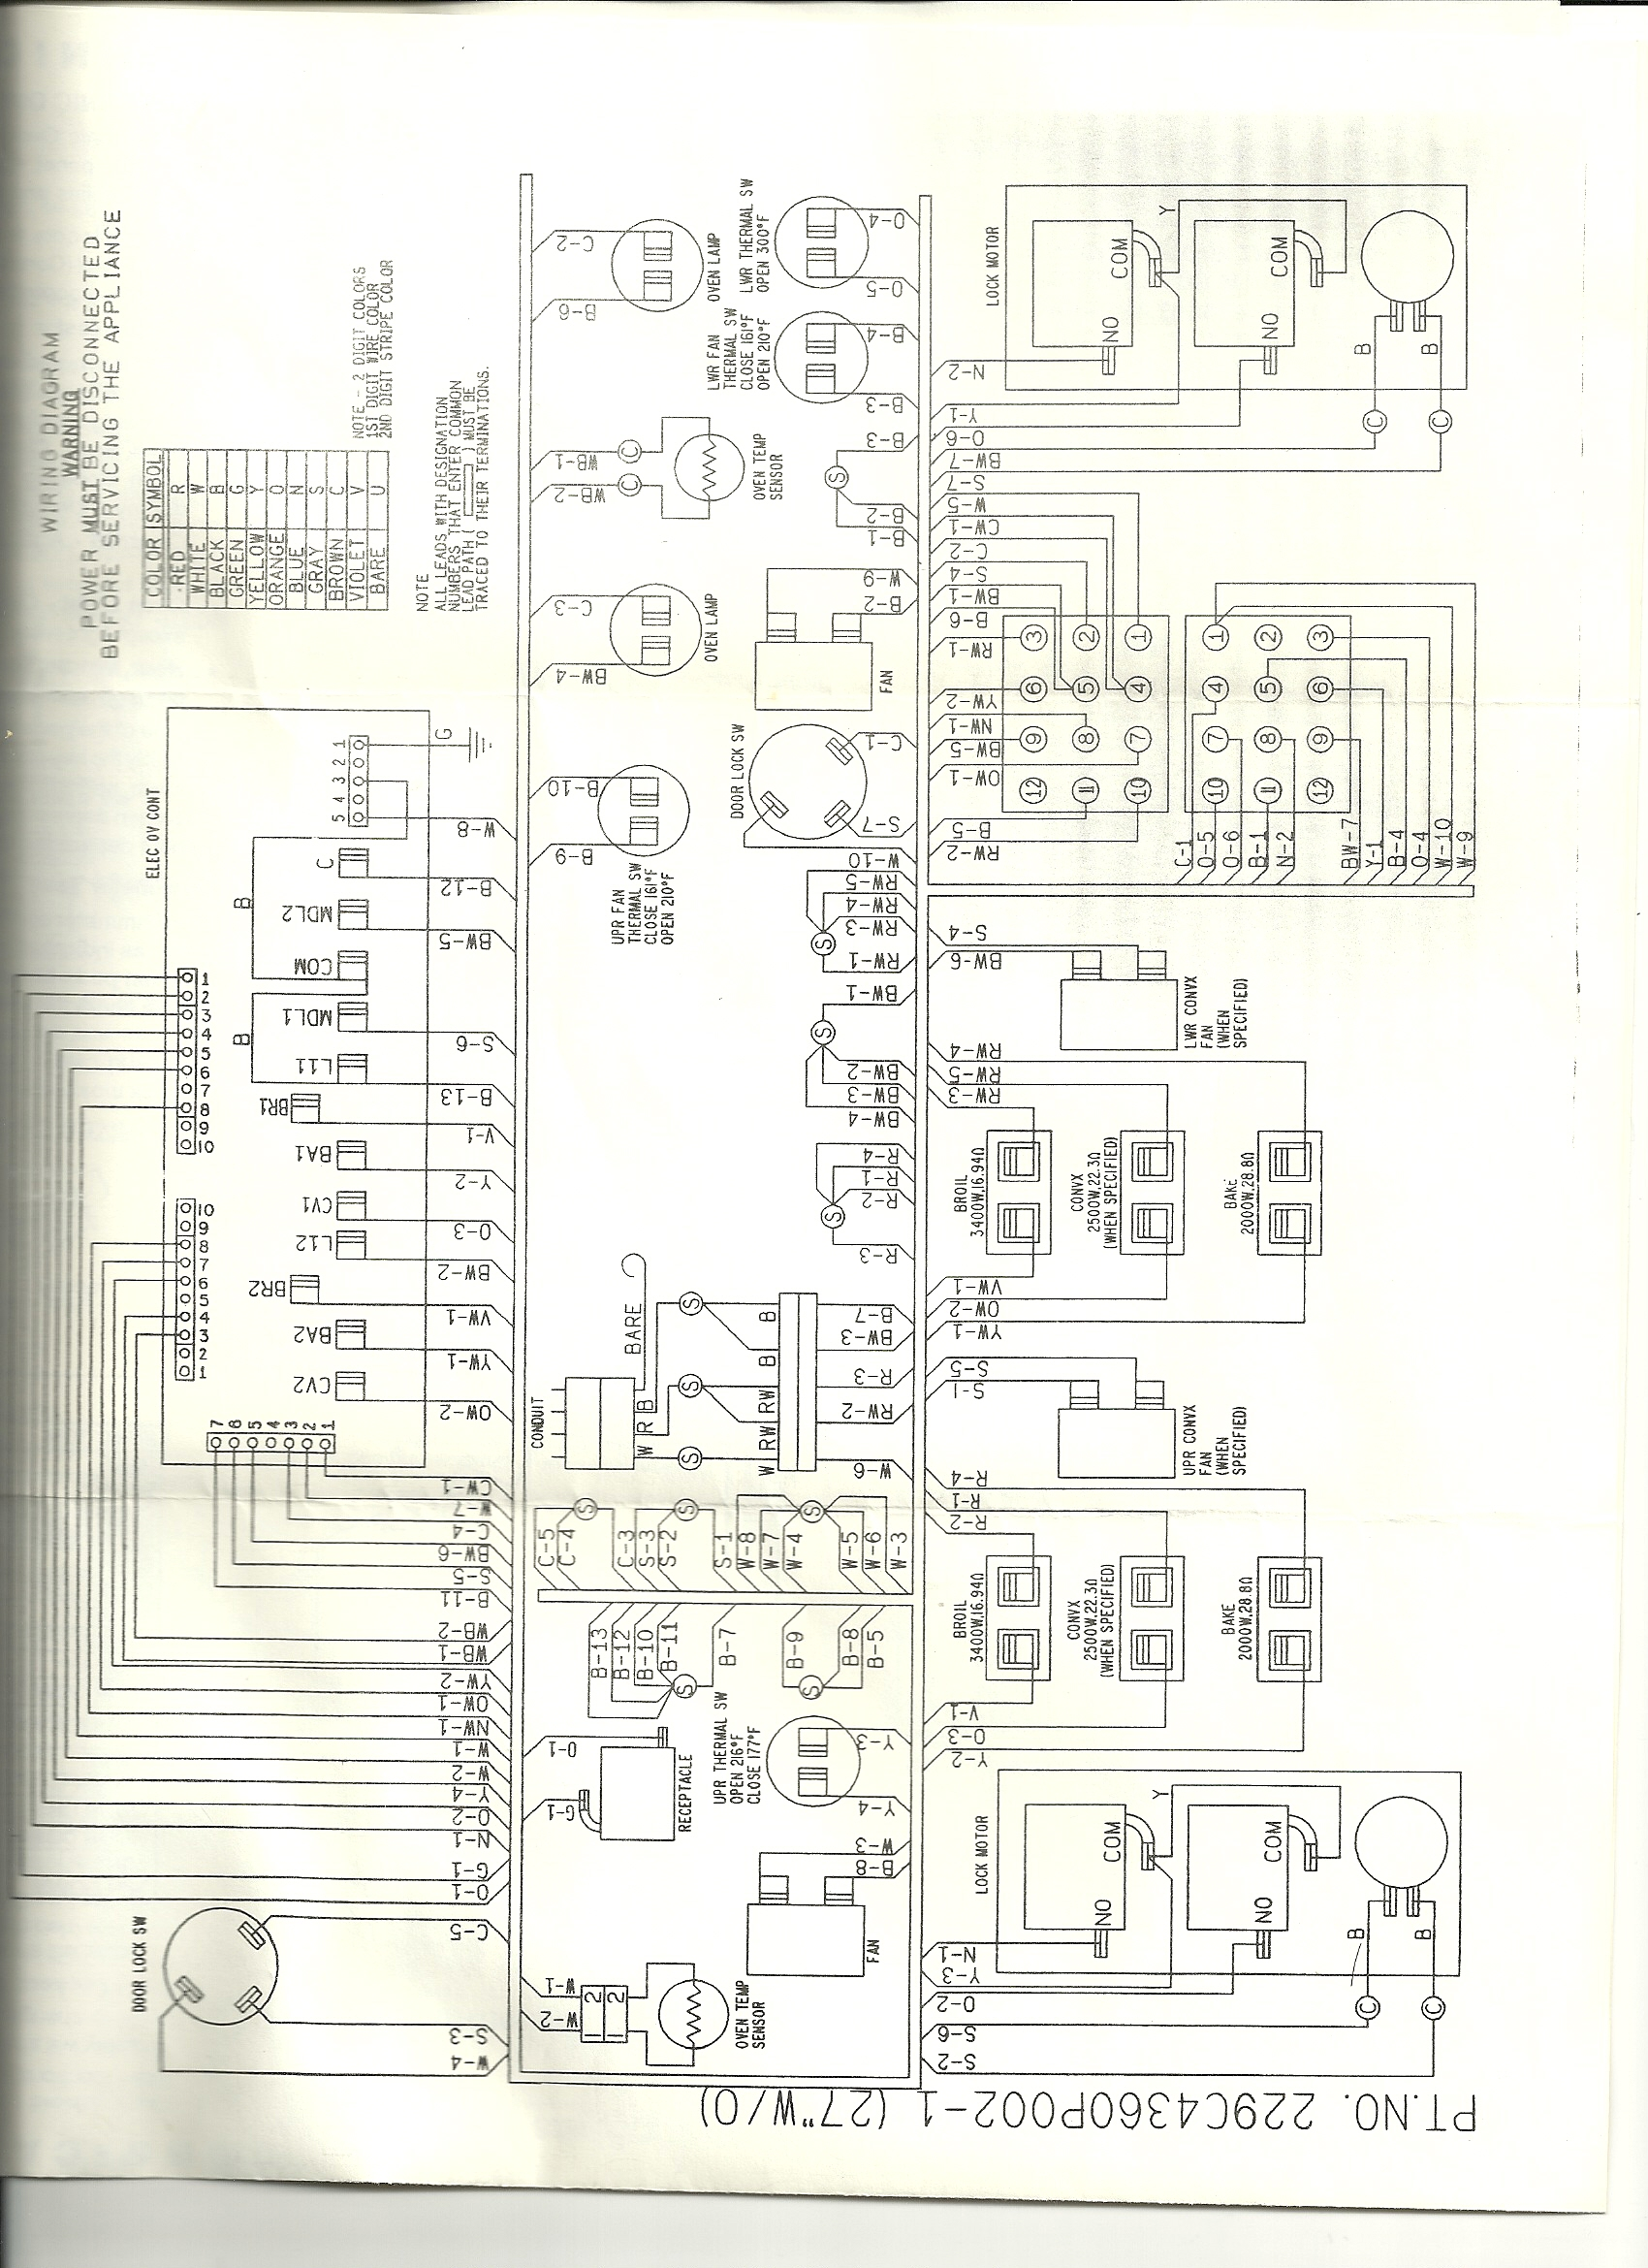 Wiring Diagram Ge Side By Side Refrigerators – The Wiring Diagram